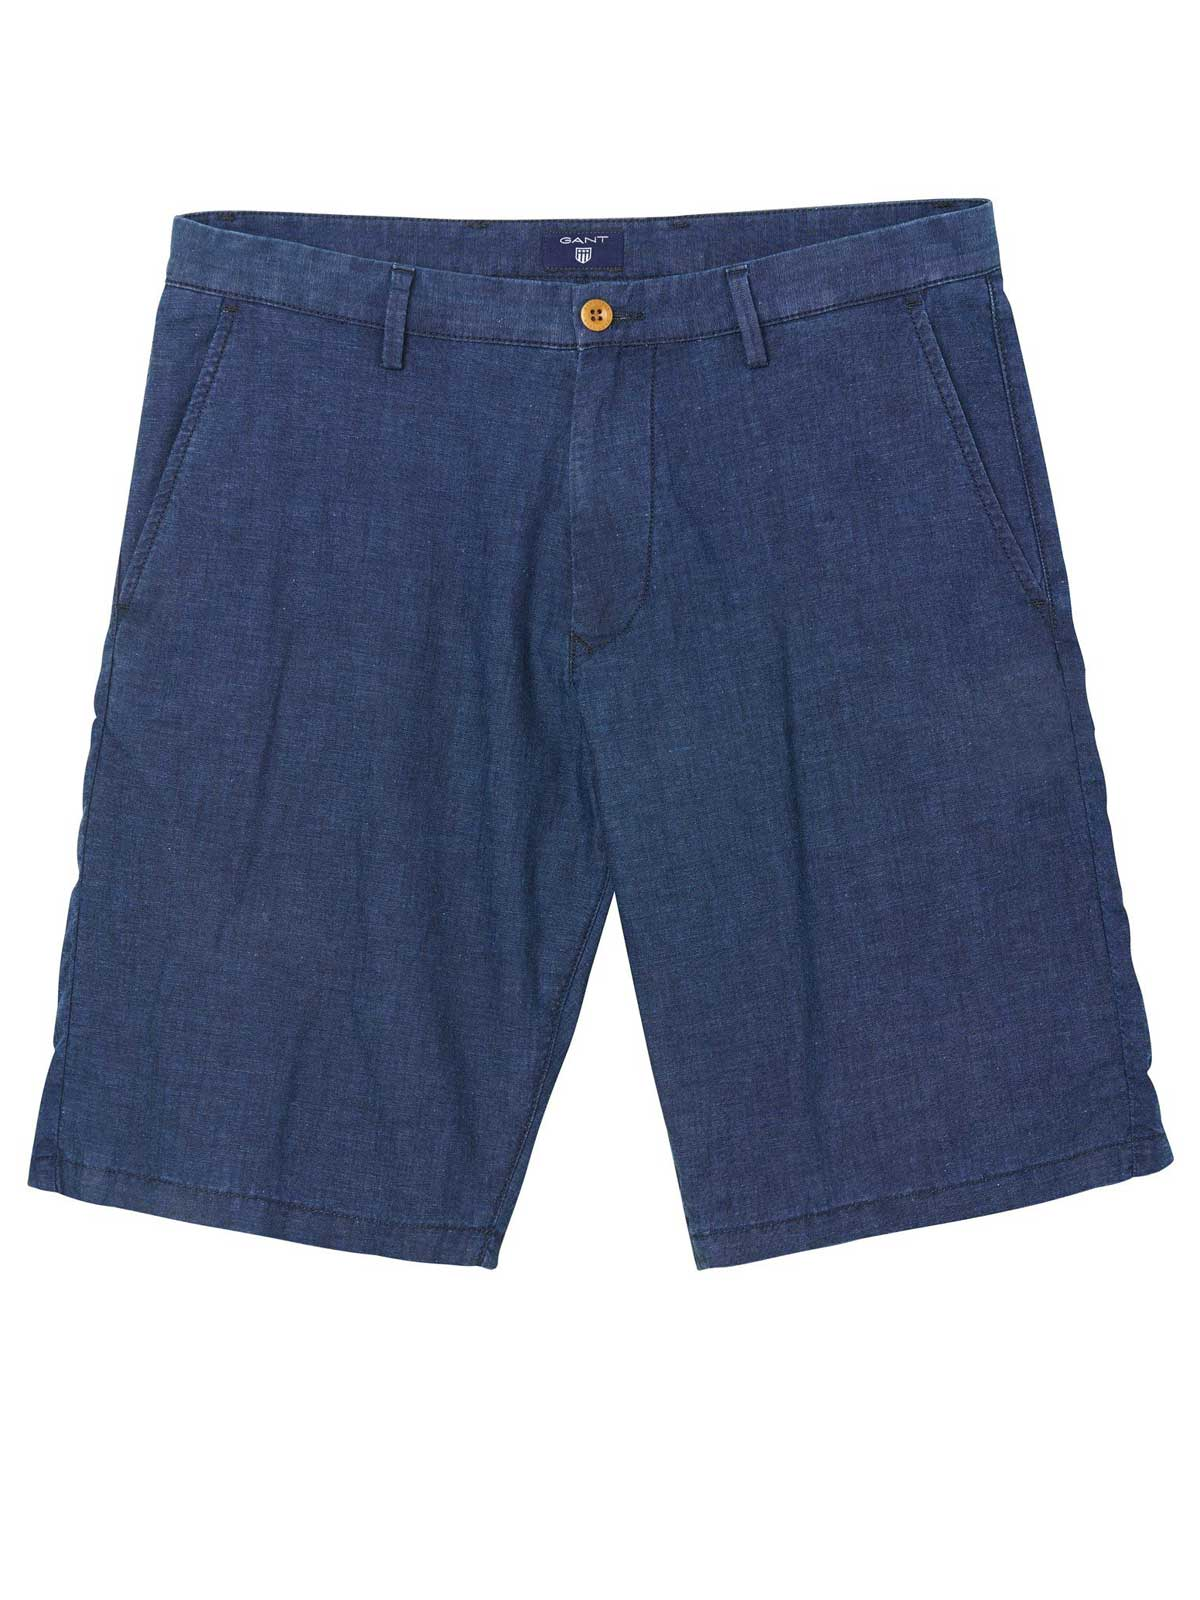 Picture of GANT | Bermuda O2. LOOSE LIGHT INDIGO SHORTS